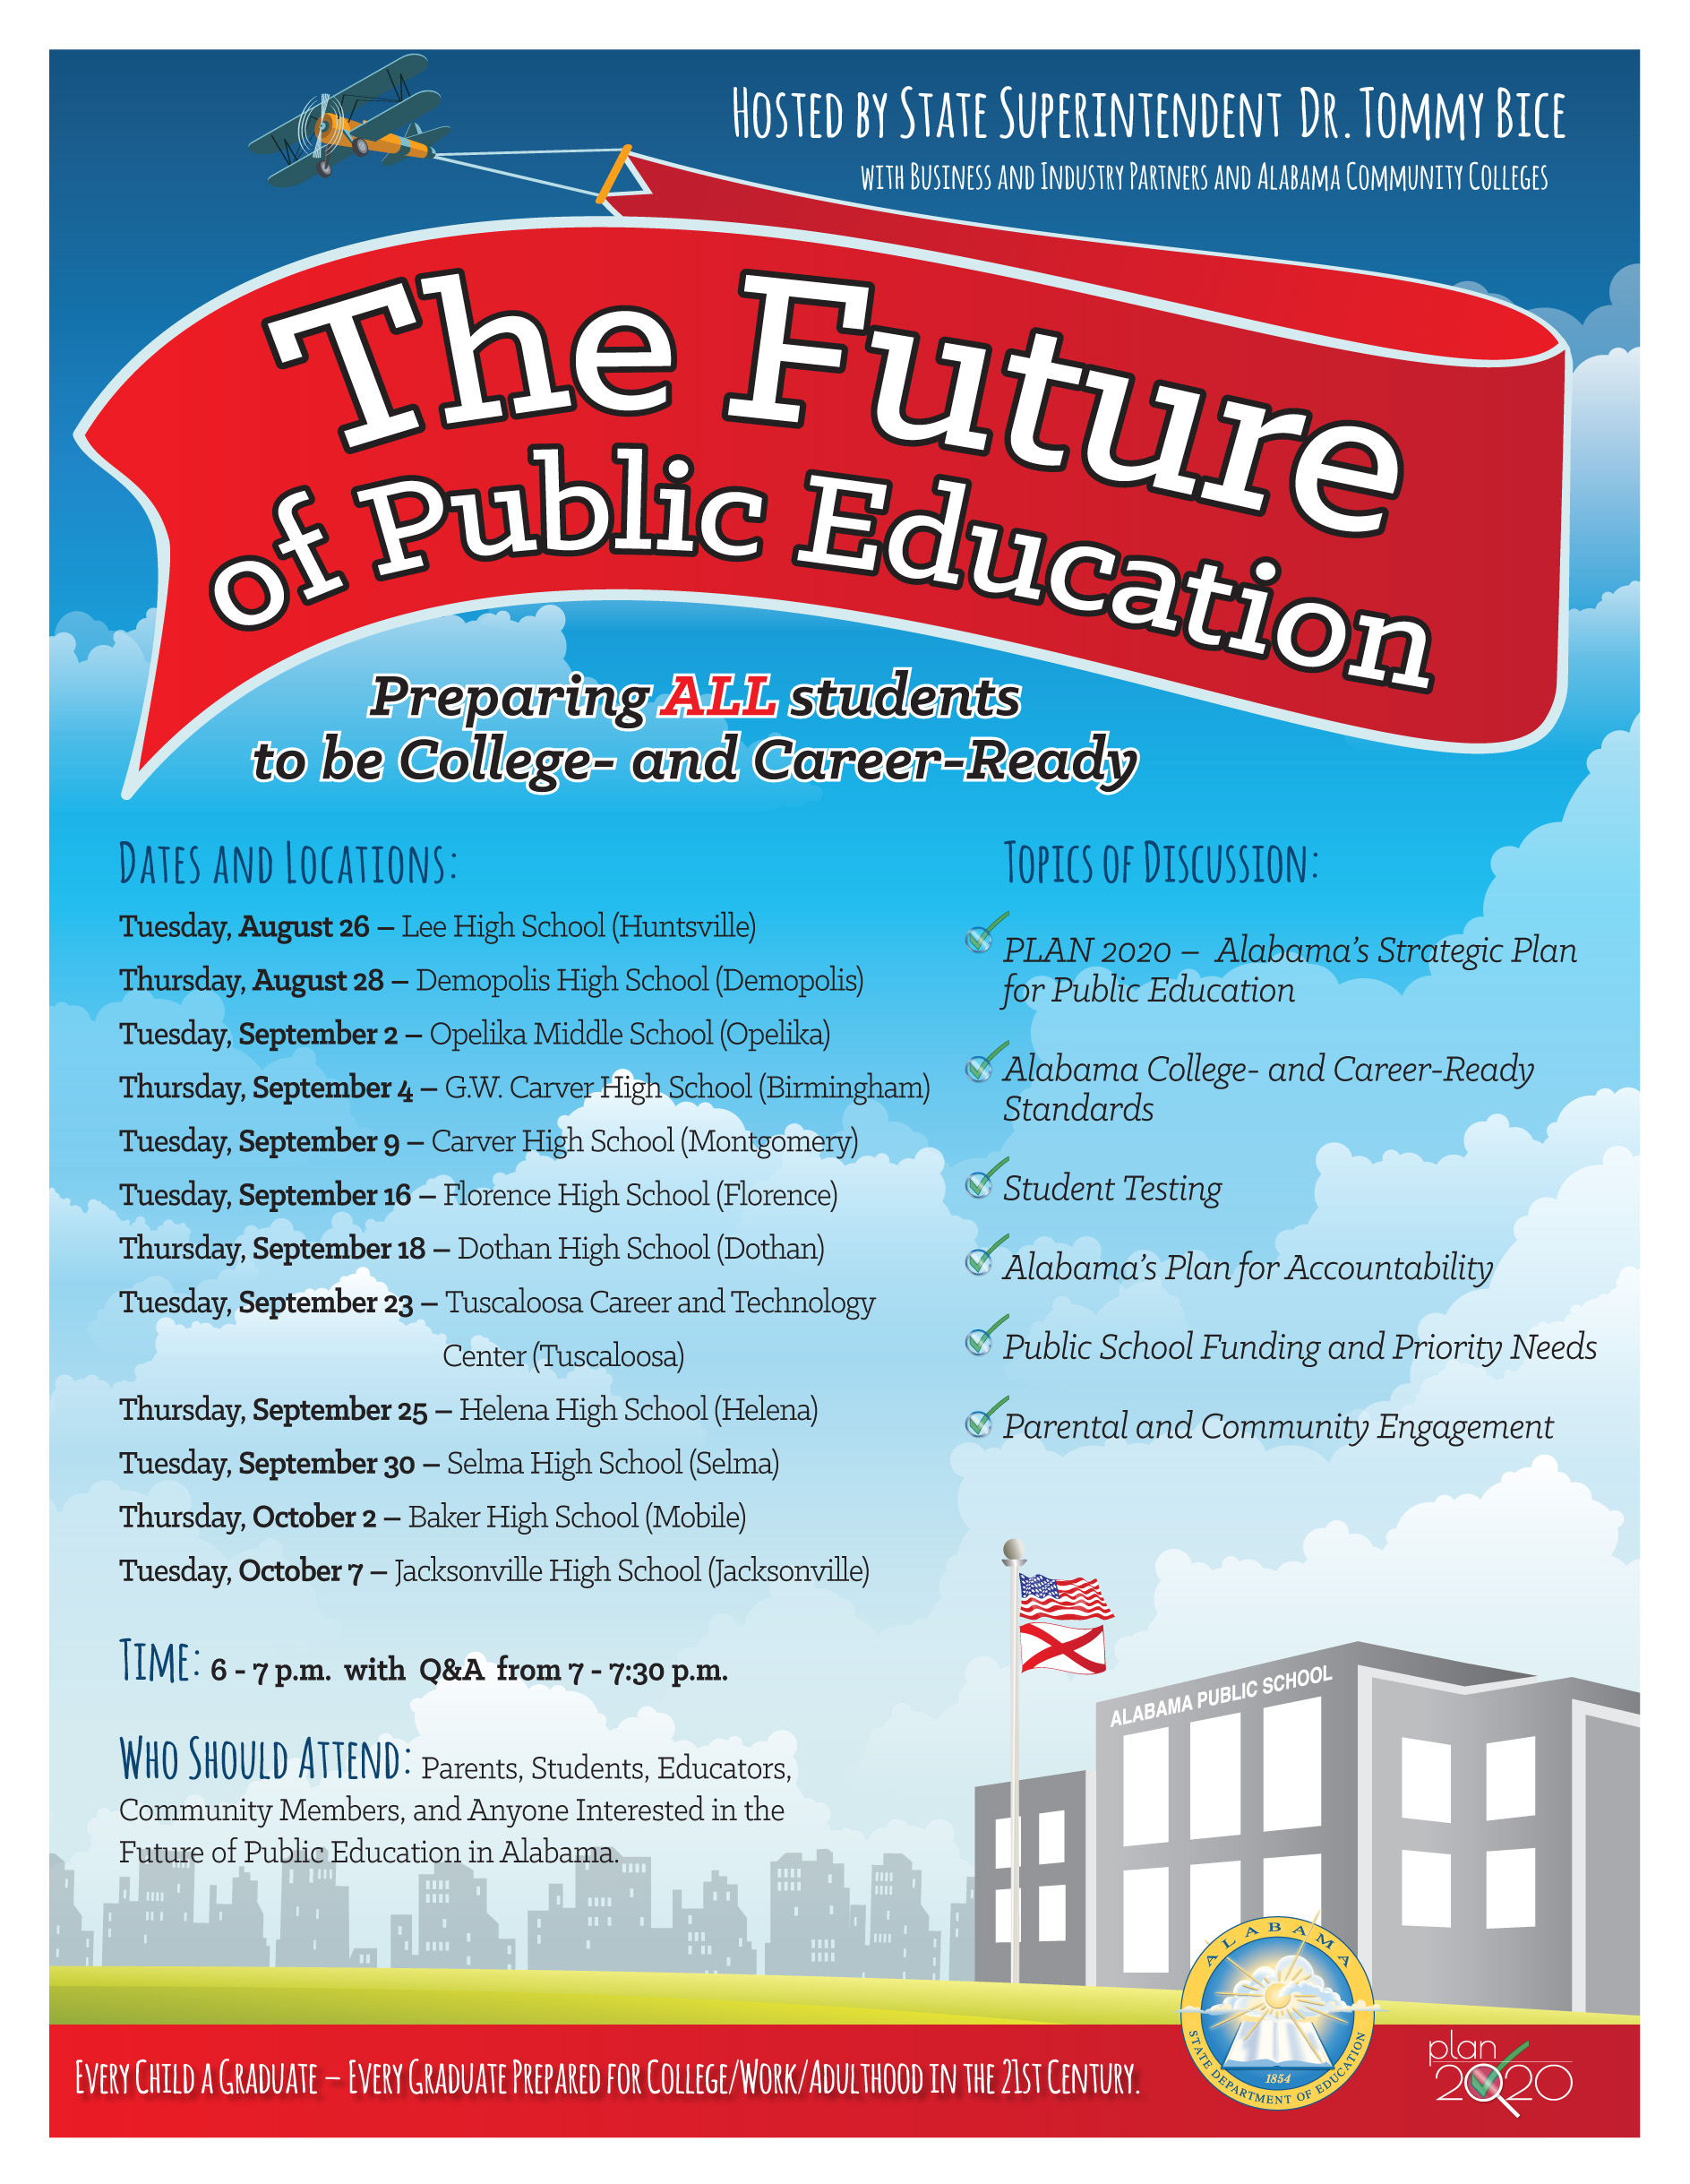 Future of Public Education poster